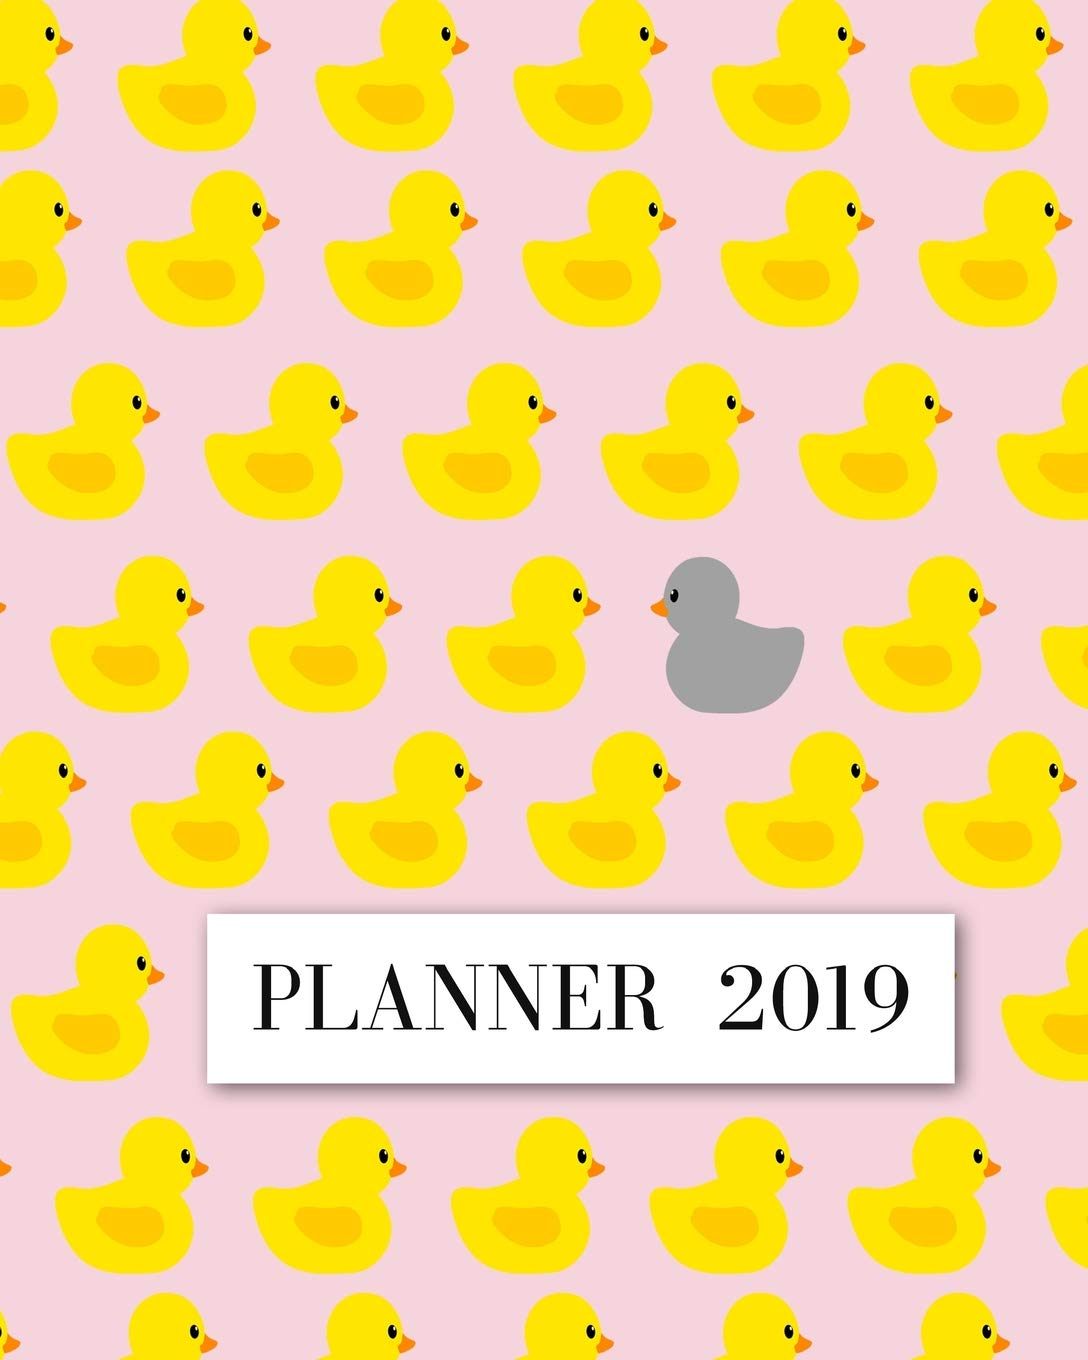 Planner 2019: Funny Rubber Duck Pattern Cover- Weekly ...